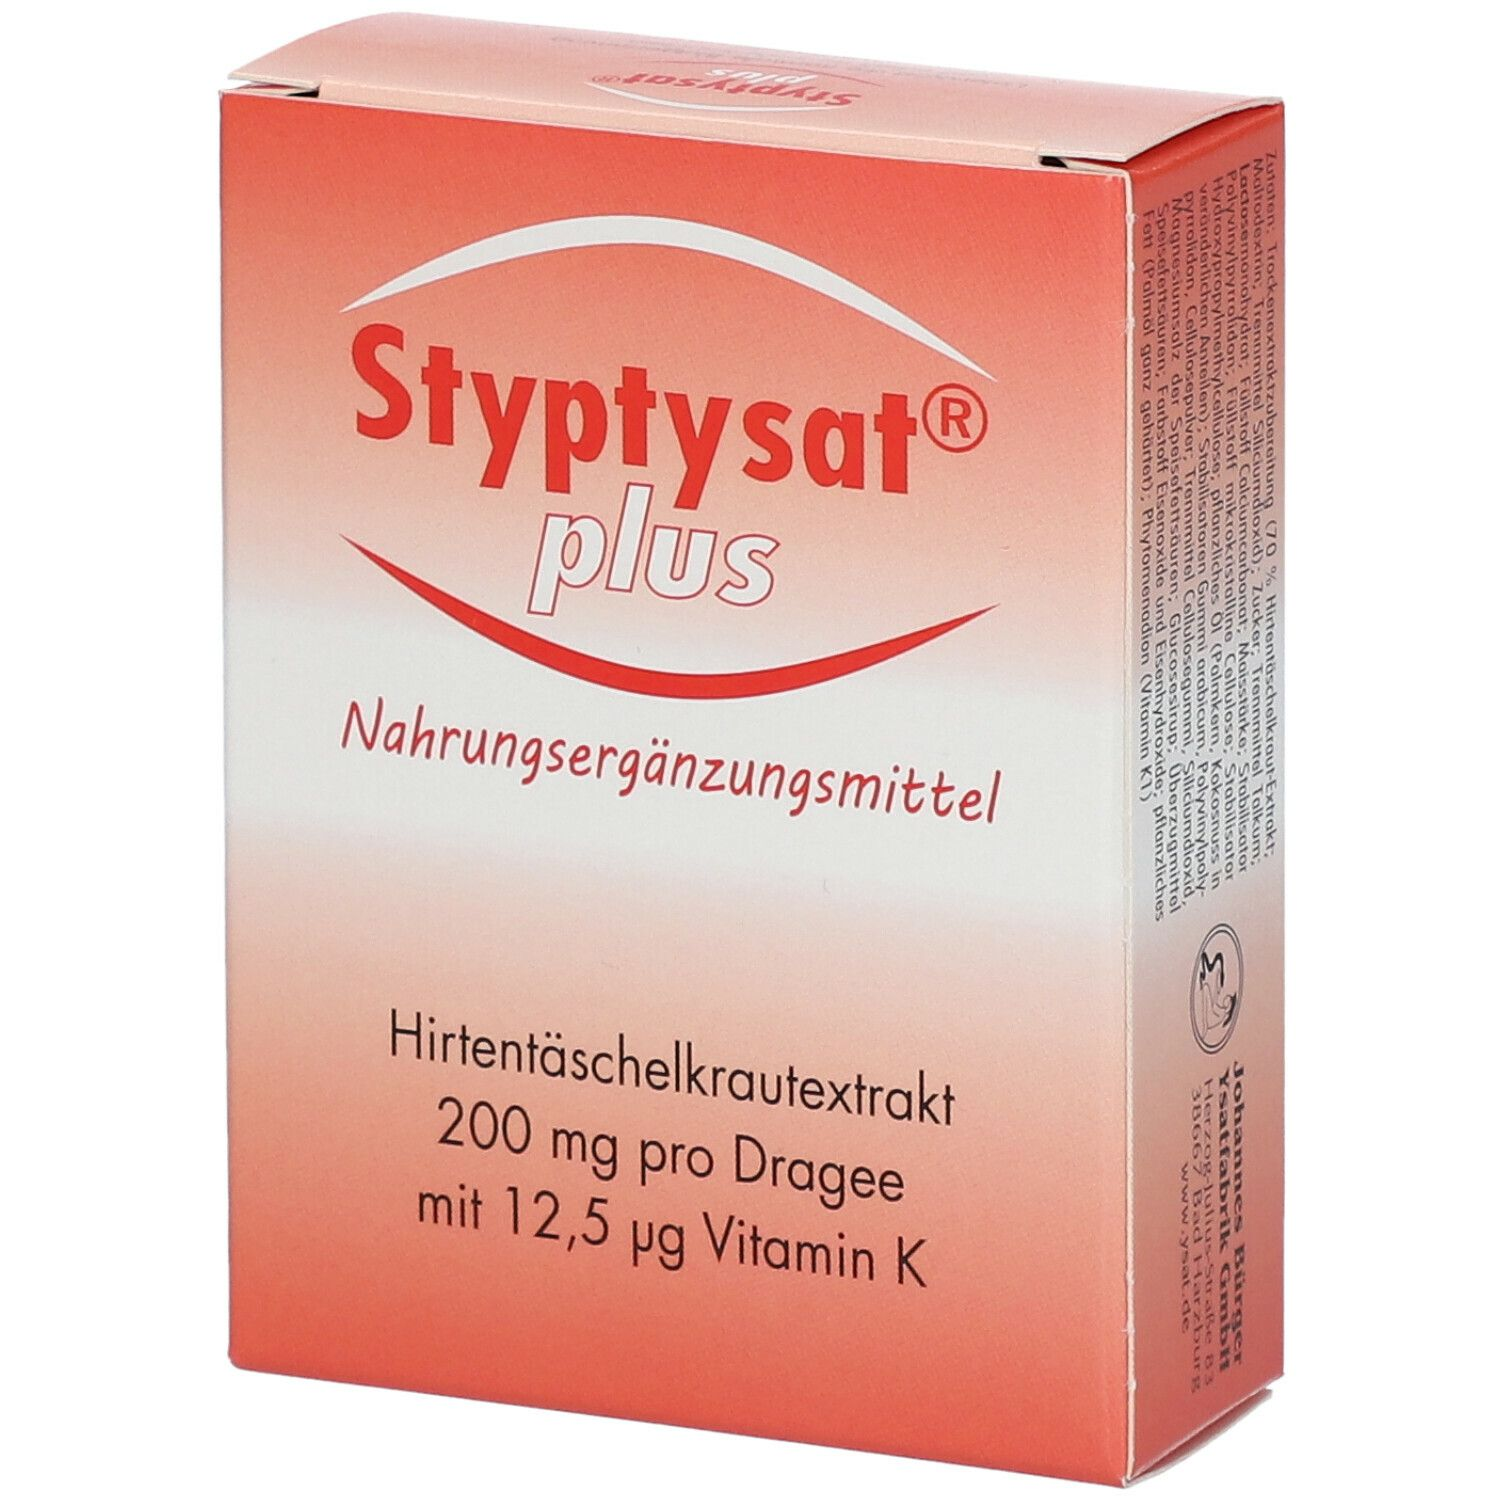 Image of Styptysat® Plus